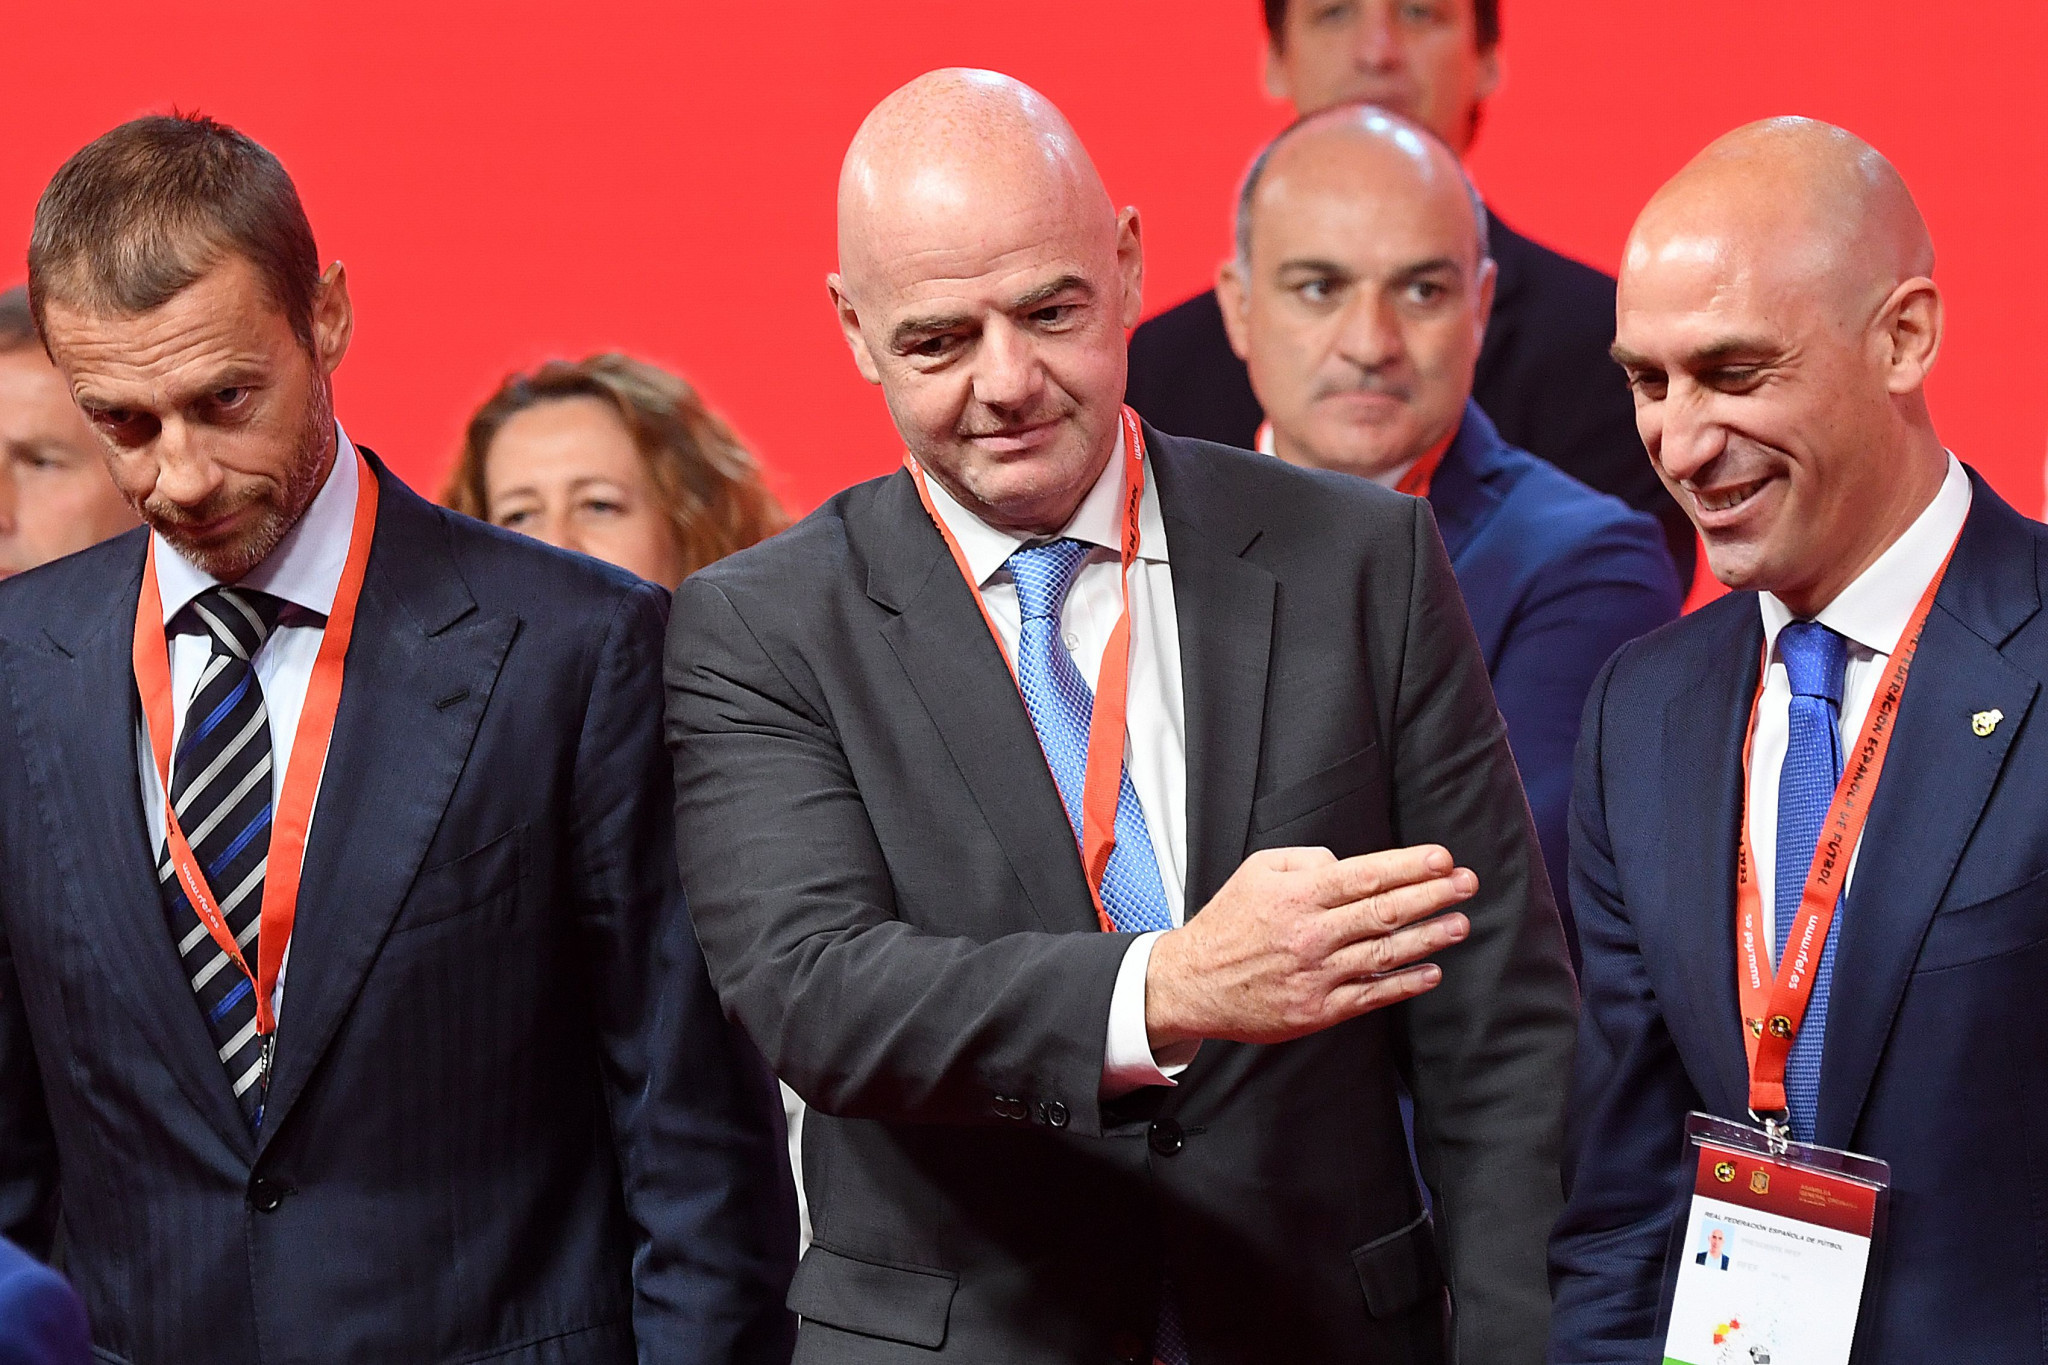 FIFA President Gianni Infantino has continually talked up how the organisation has changed since the corruption scandal ©Getty Images